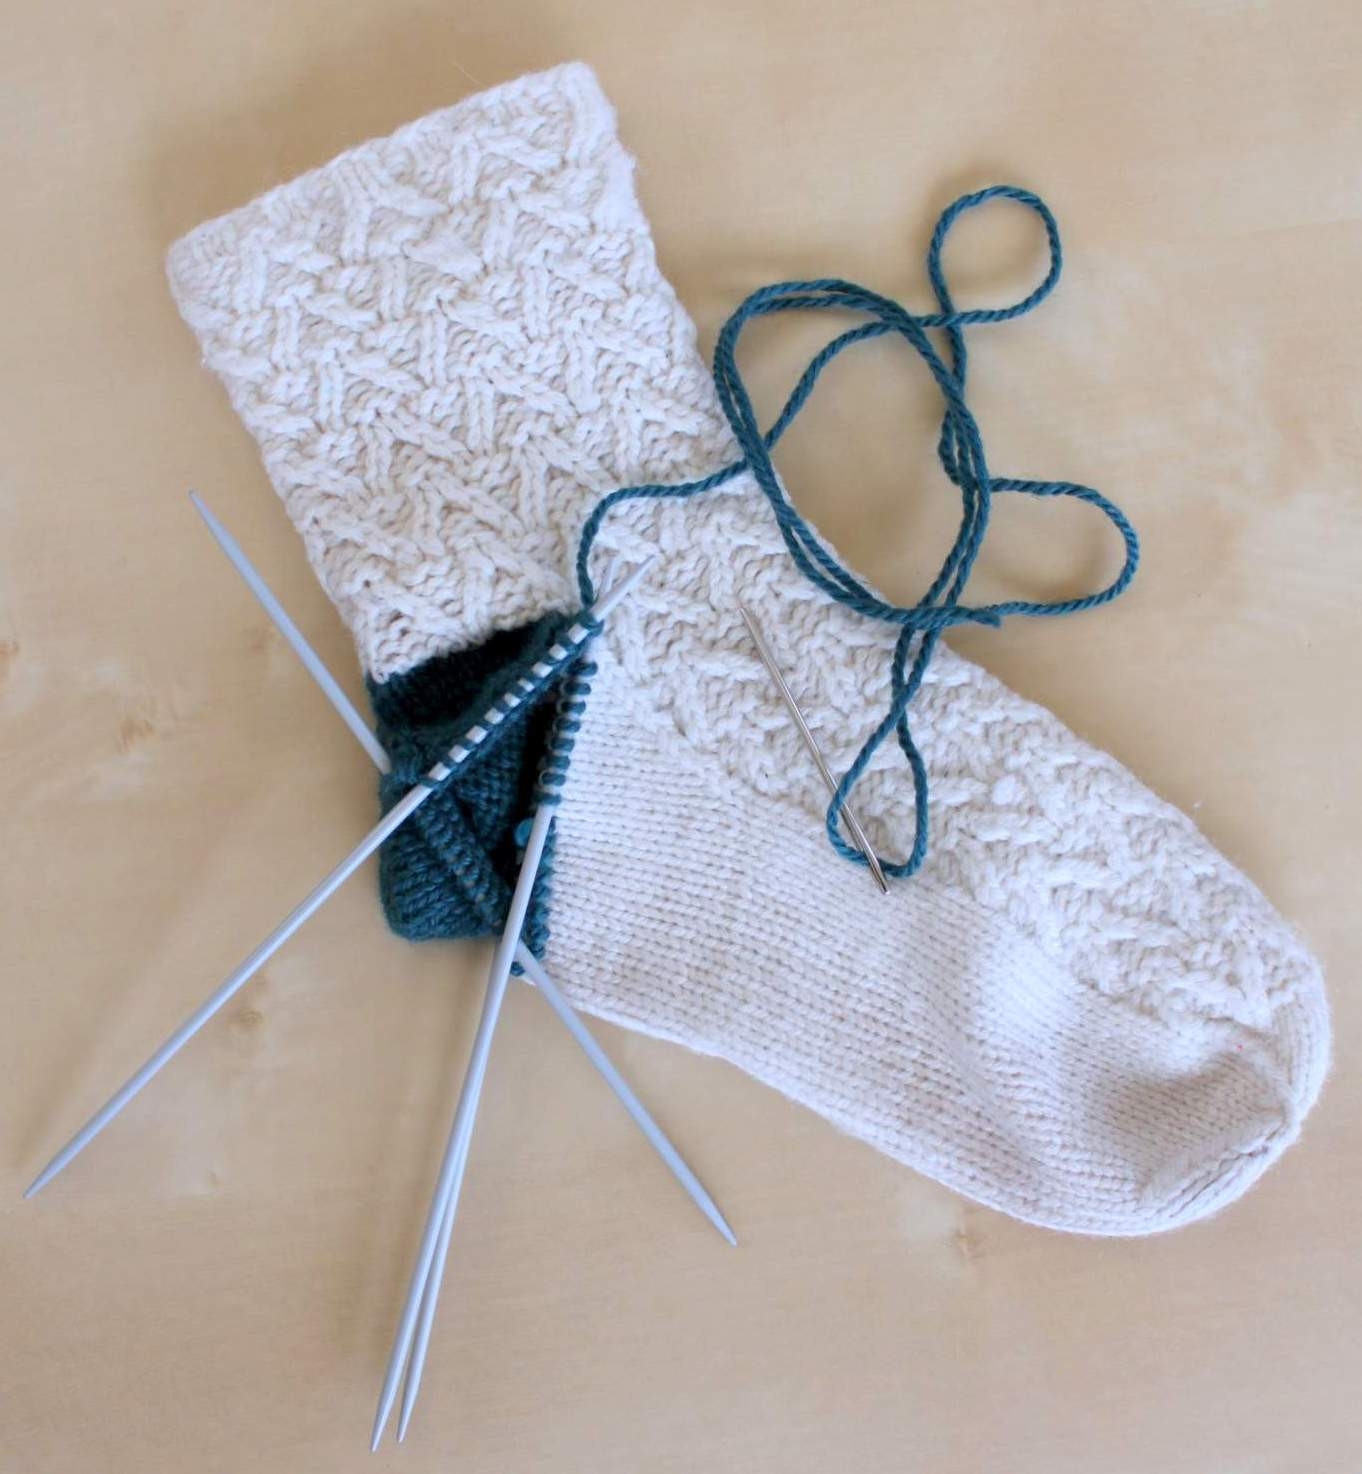 Knitting Pick Up Stitches Heel Flap : Hand Knitted Things: Knitted Sock Heel Repair